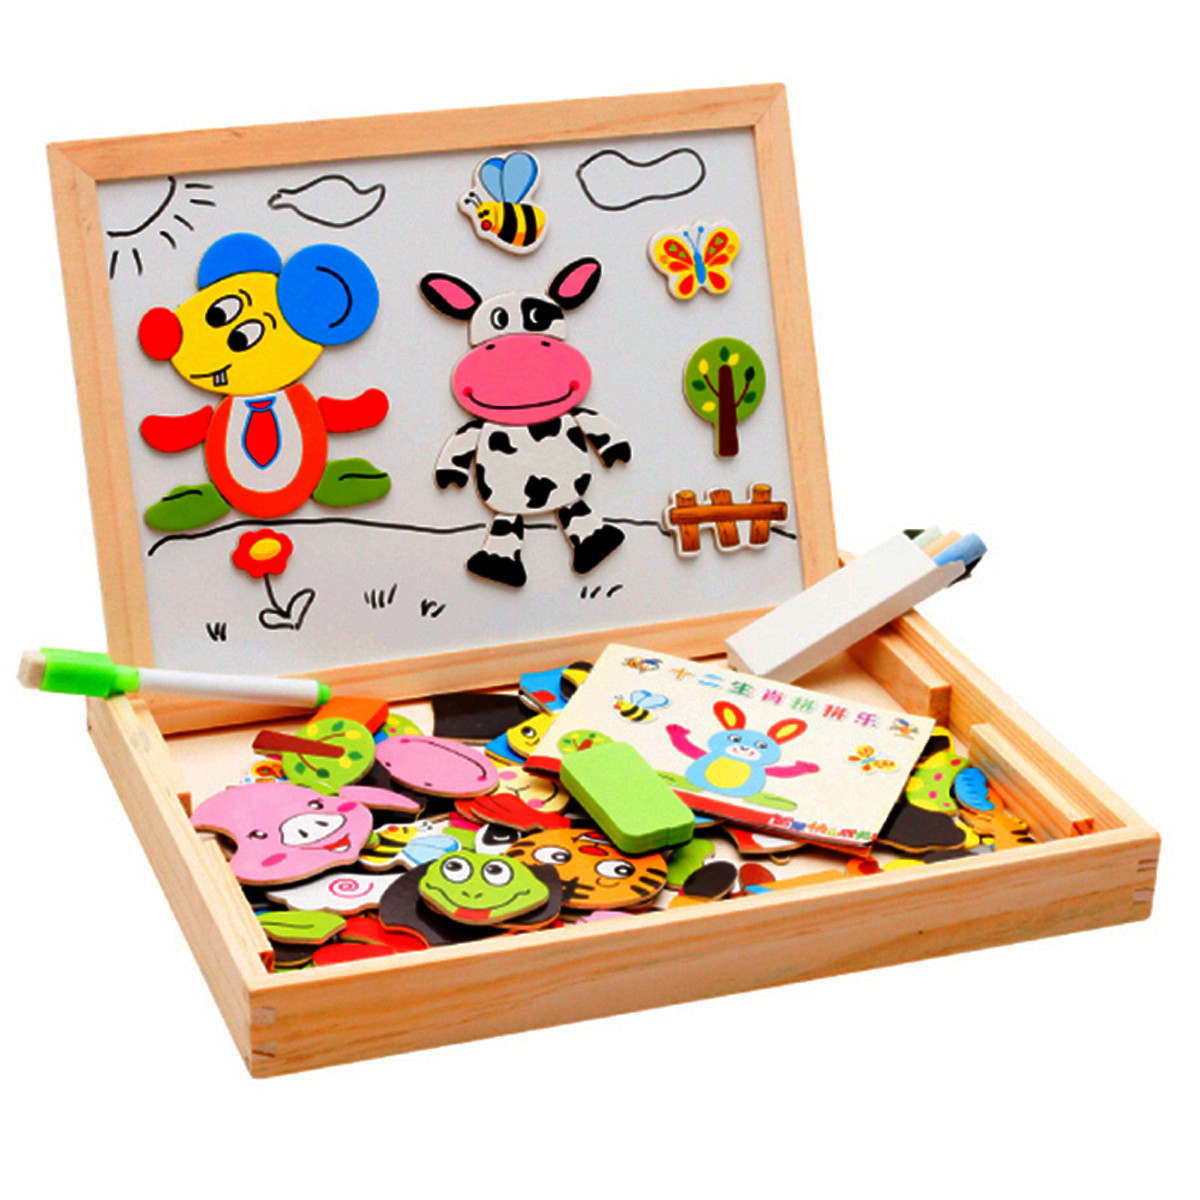 New Arrival Drawing Writing Board Magnetic Puzzle Double Easel Kid Wooden Toy Gift Children Intelligence Development Toy